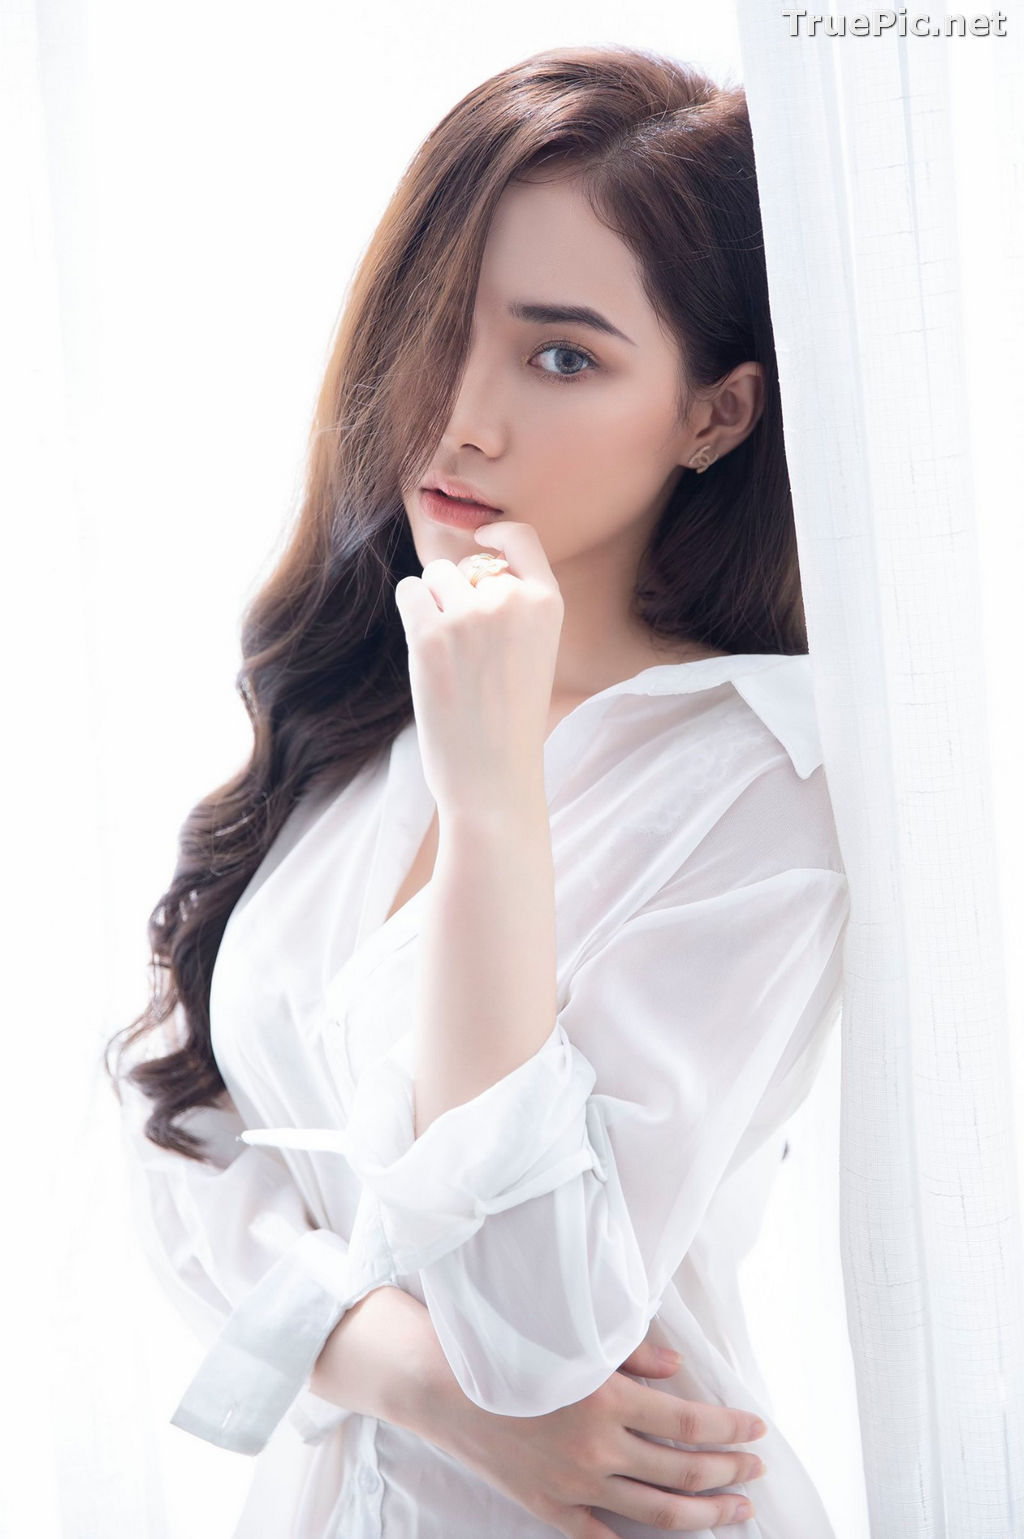 Image Vietnamese Model - Hot Beautiful Girls In White Collection - TruePic.net - Picture-10